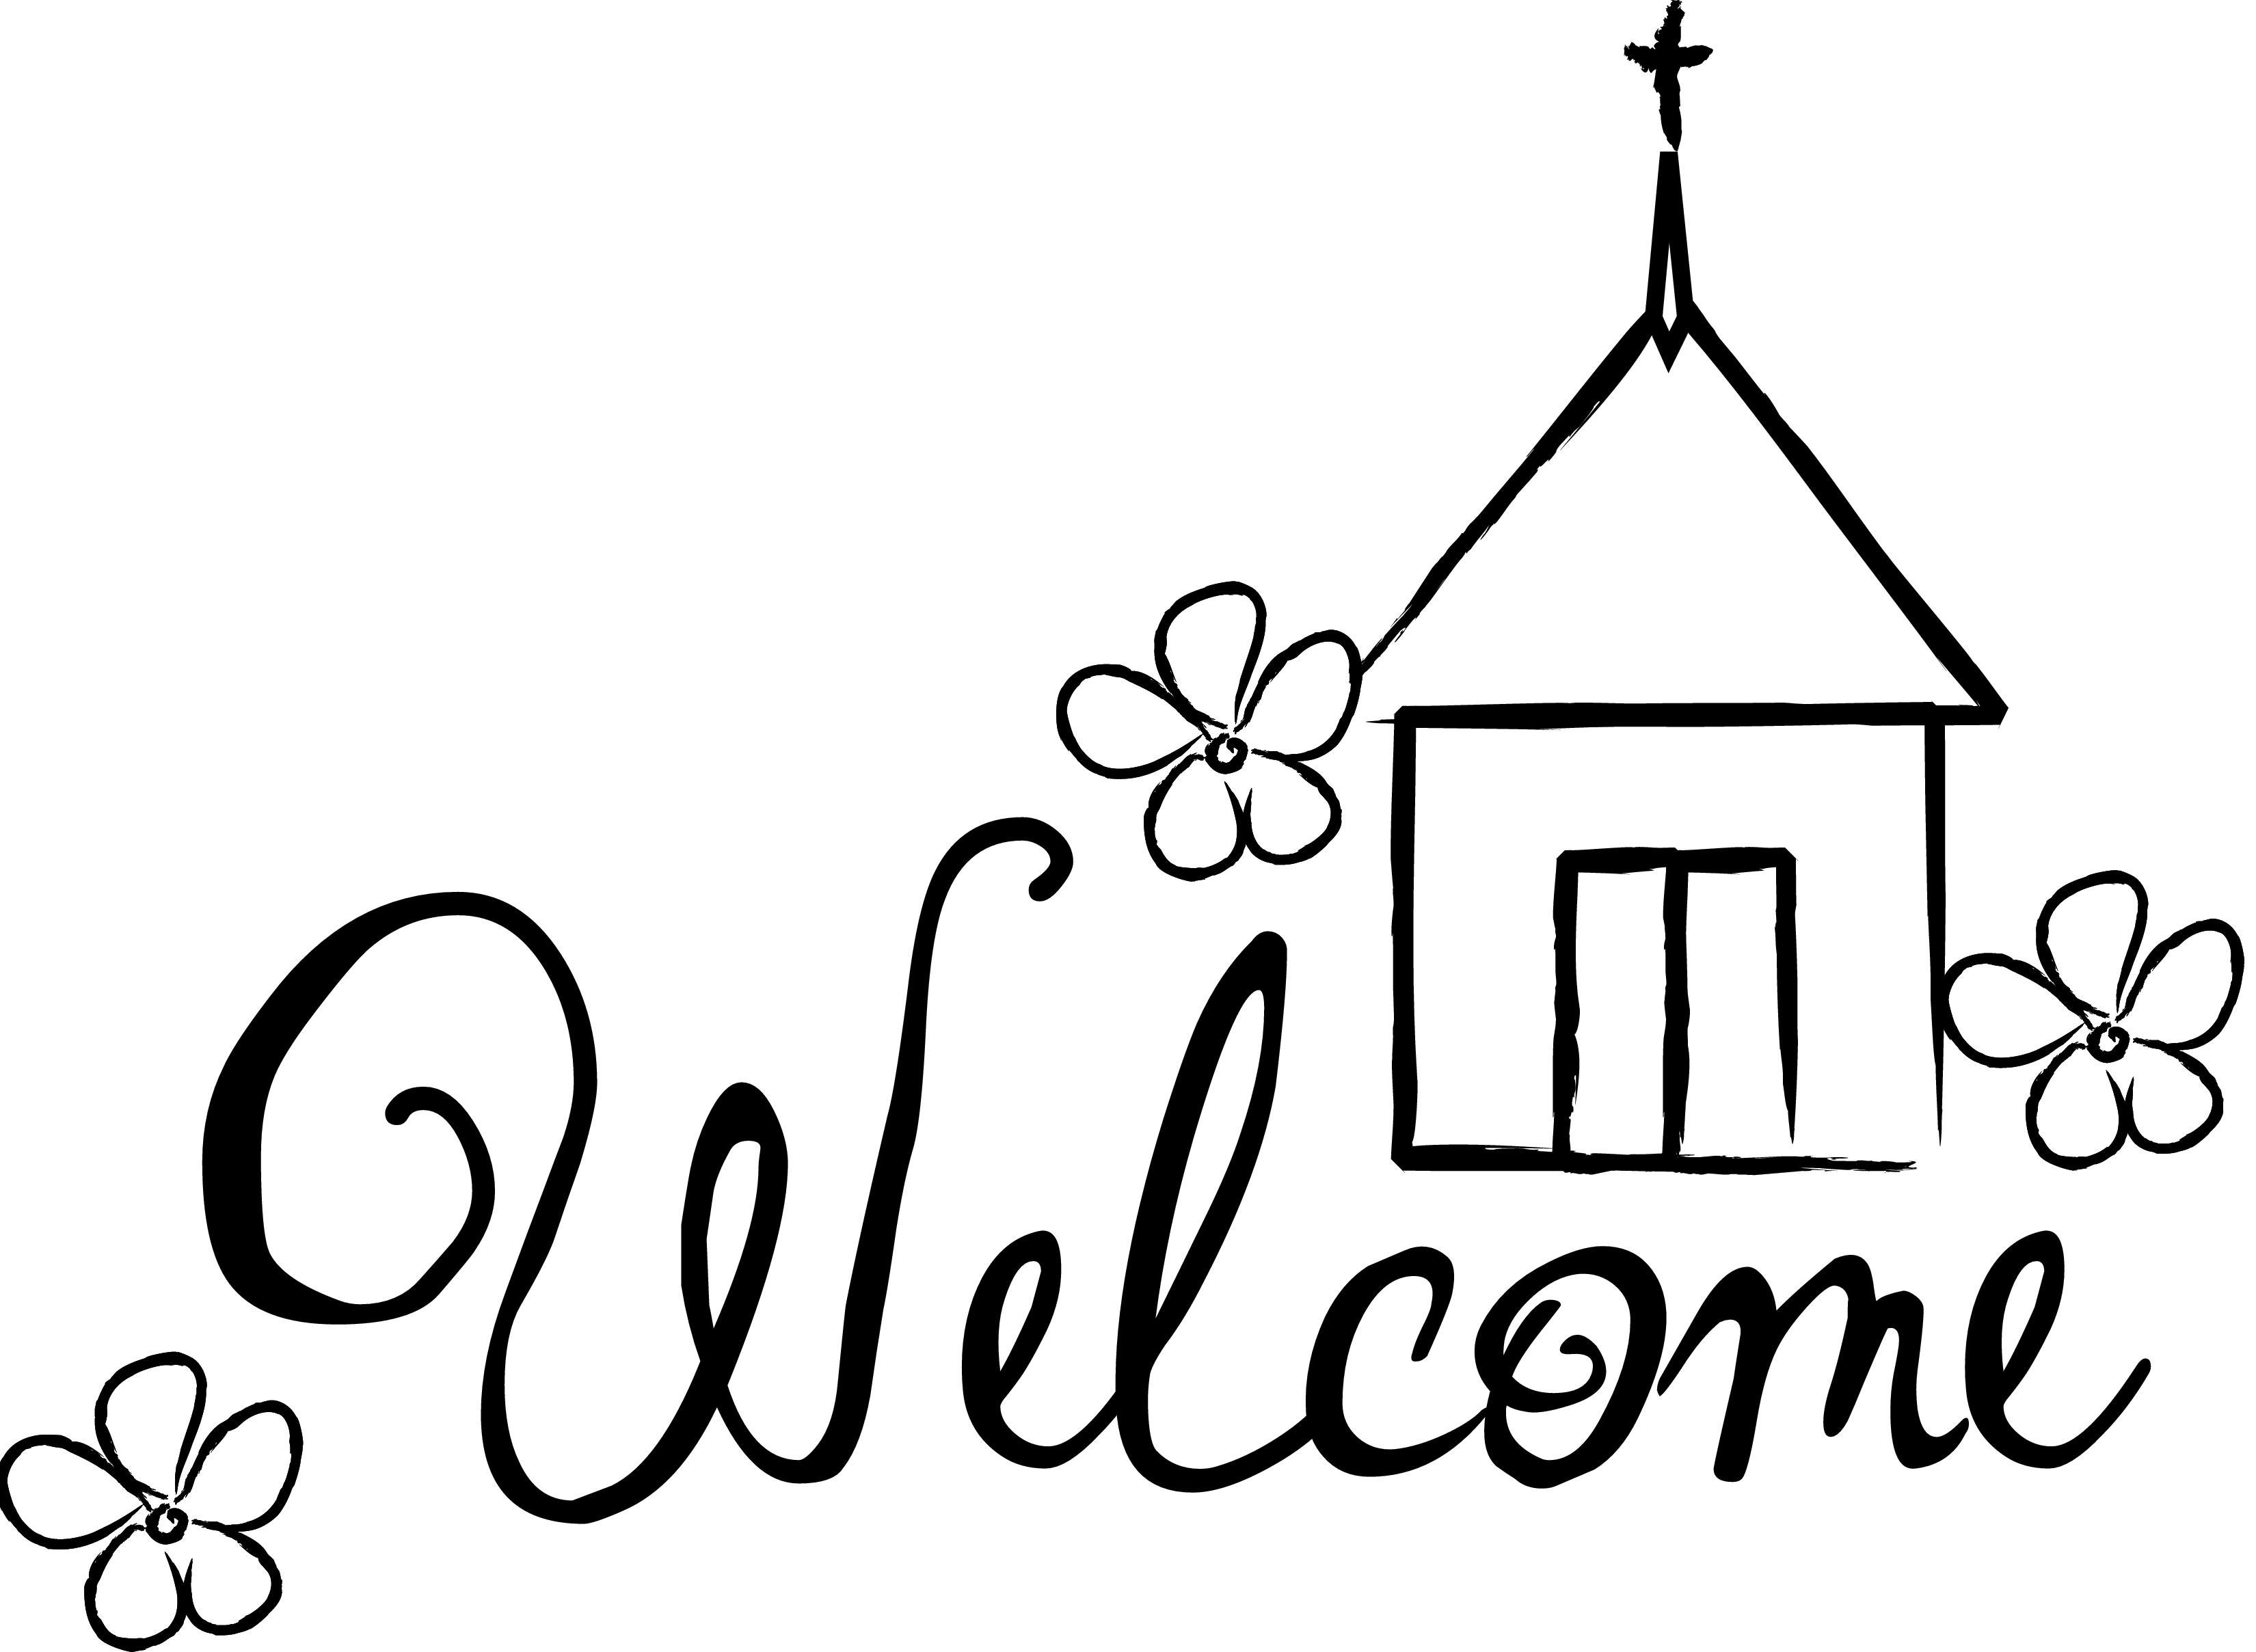 Gallery clipart welcome Clipartix welcome Welcome clipart Art